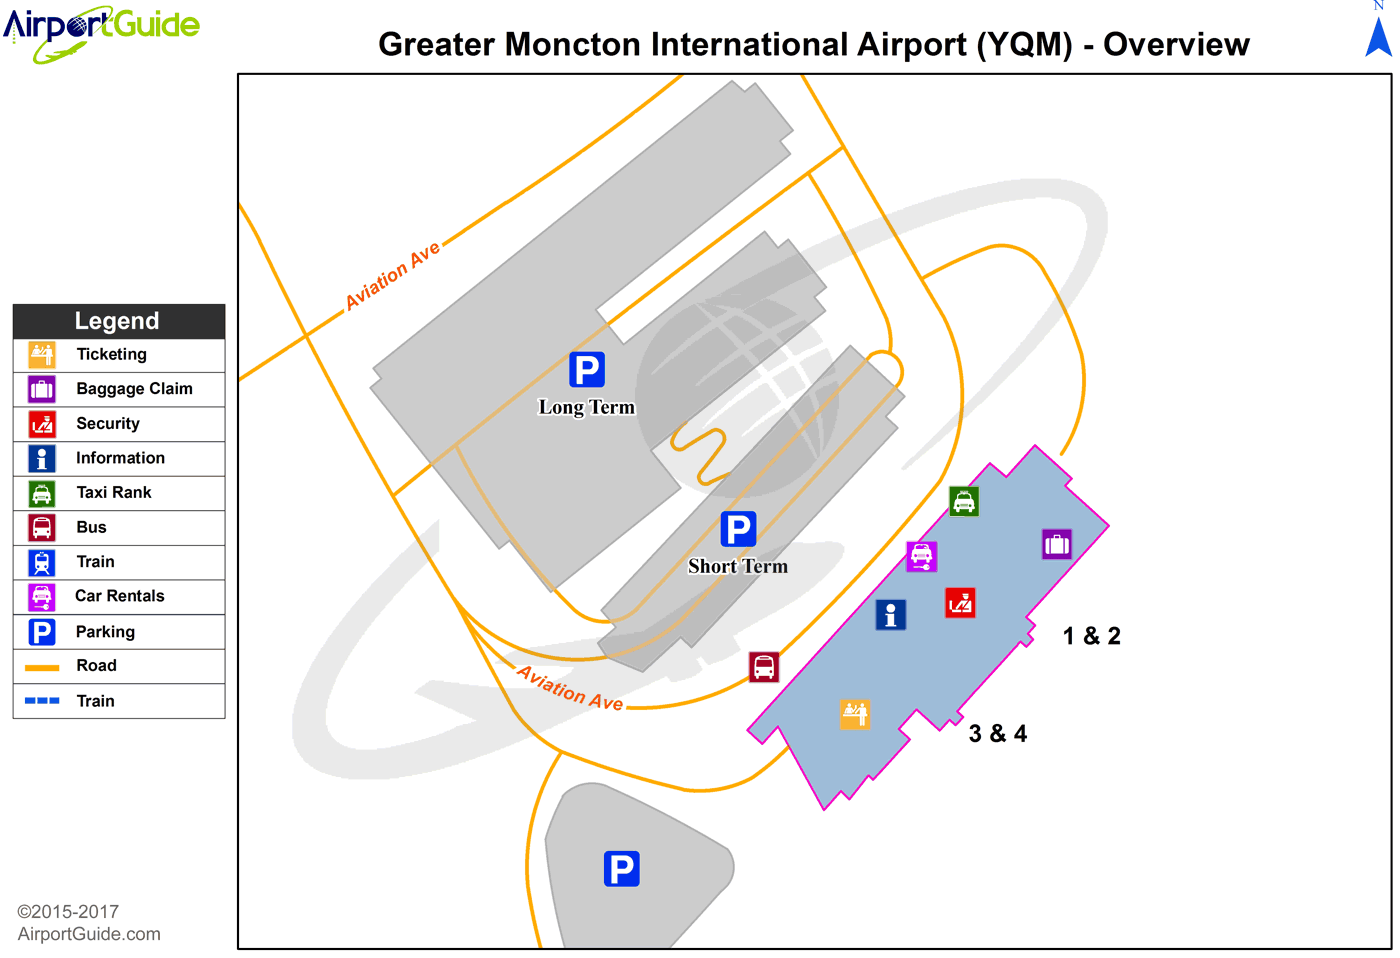 Moncton - Greater Moncton International (YQM) Airport Terminal Map - Overview